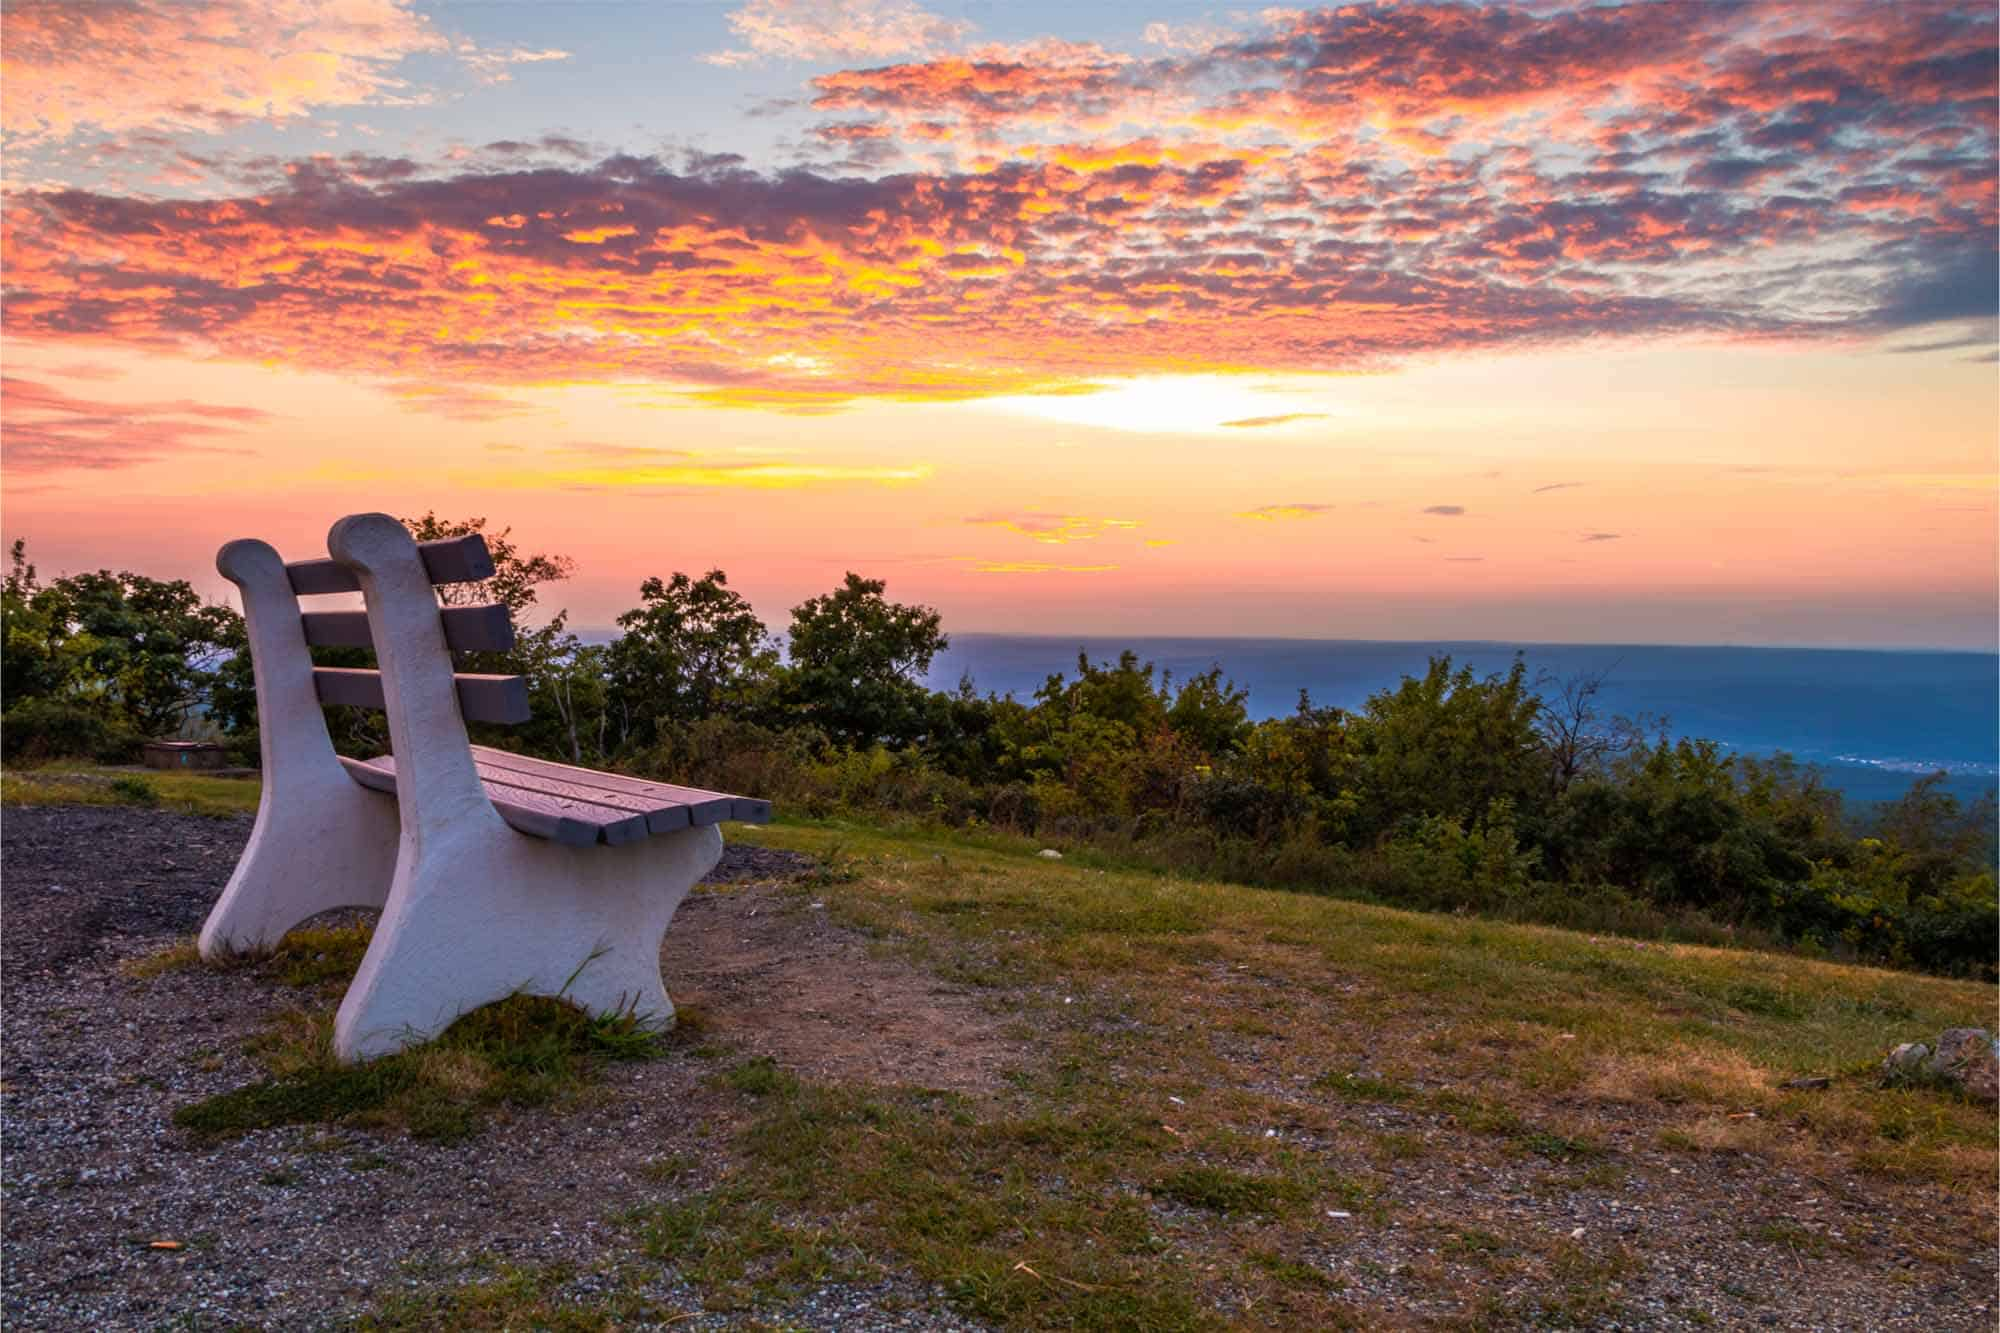 Park bench at sunset on mountain